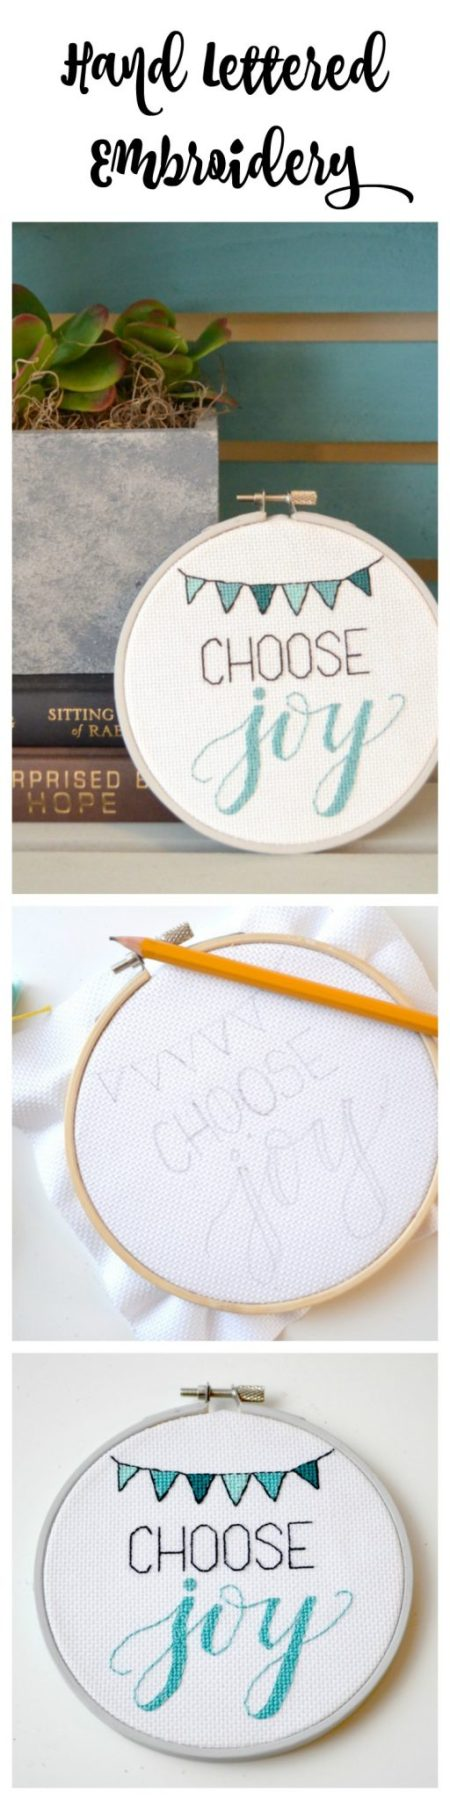 Hand Lettered Embroidery